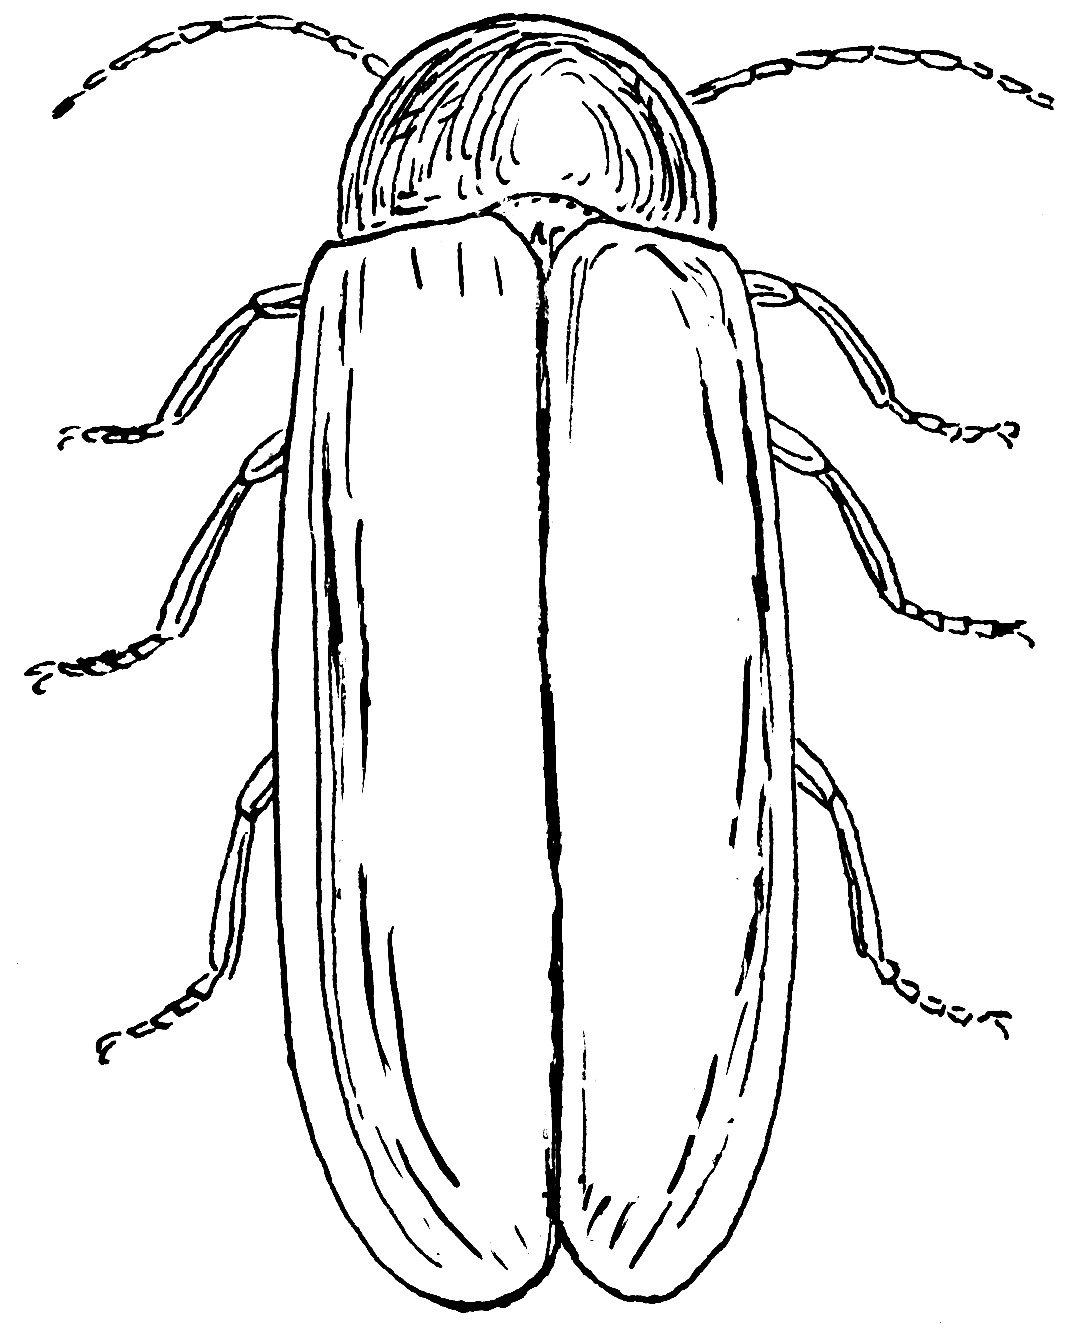 1081x1340 Lightning Bug Coloring Pages Lightning Bugs Coloring Sheets